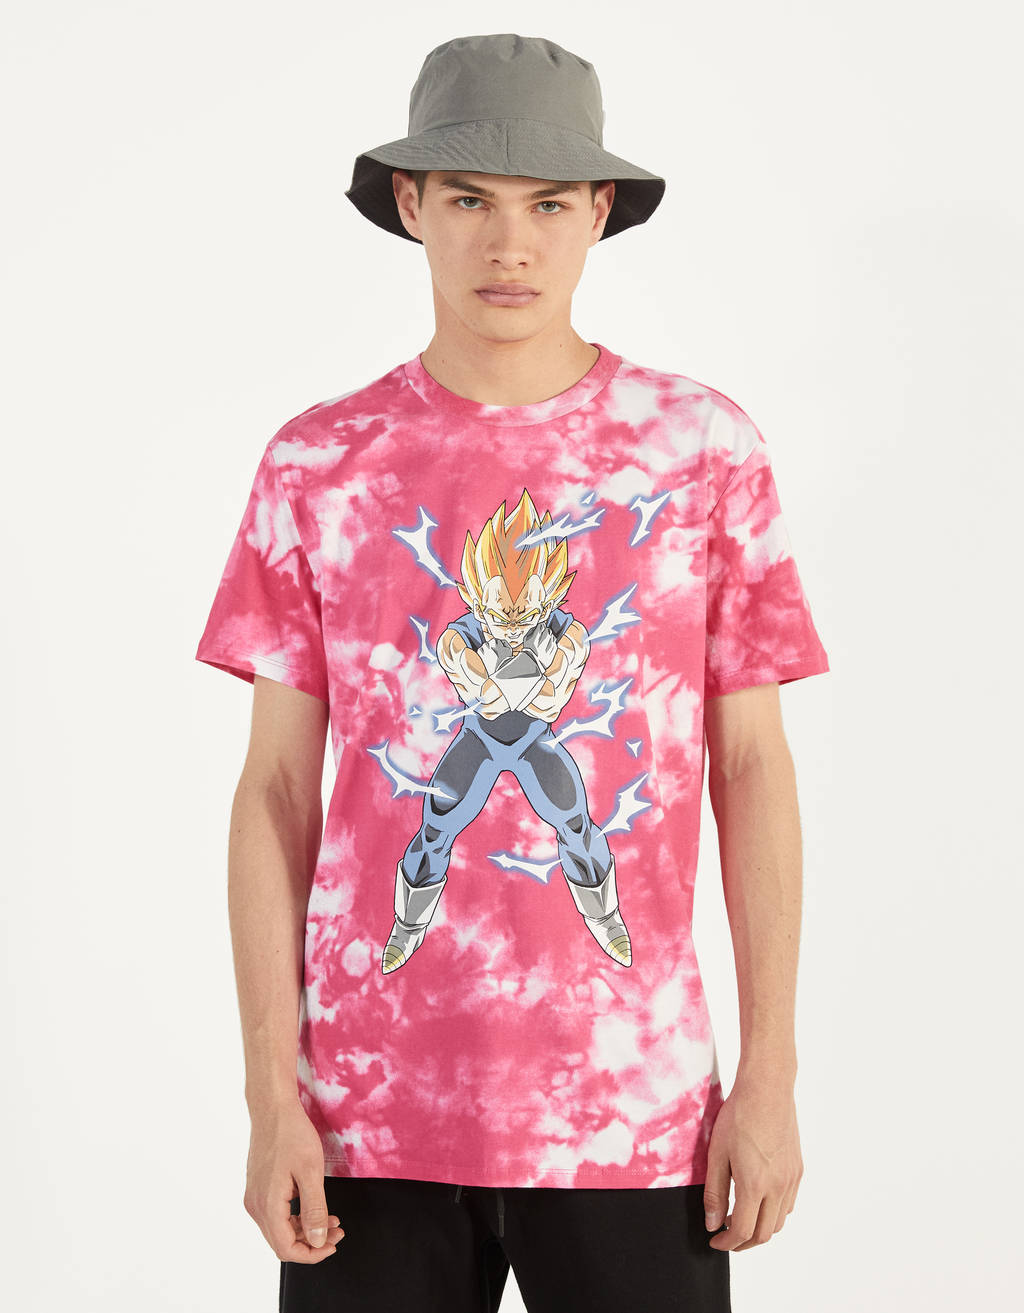 Dragon Ball Z x Bershka batikfarvet T-shirt